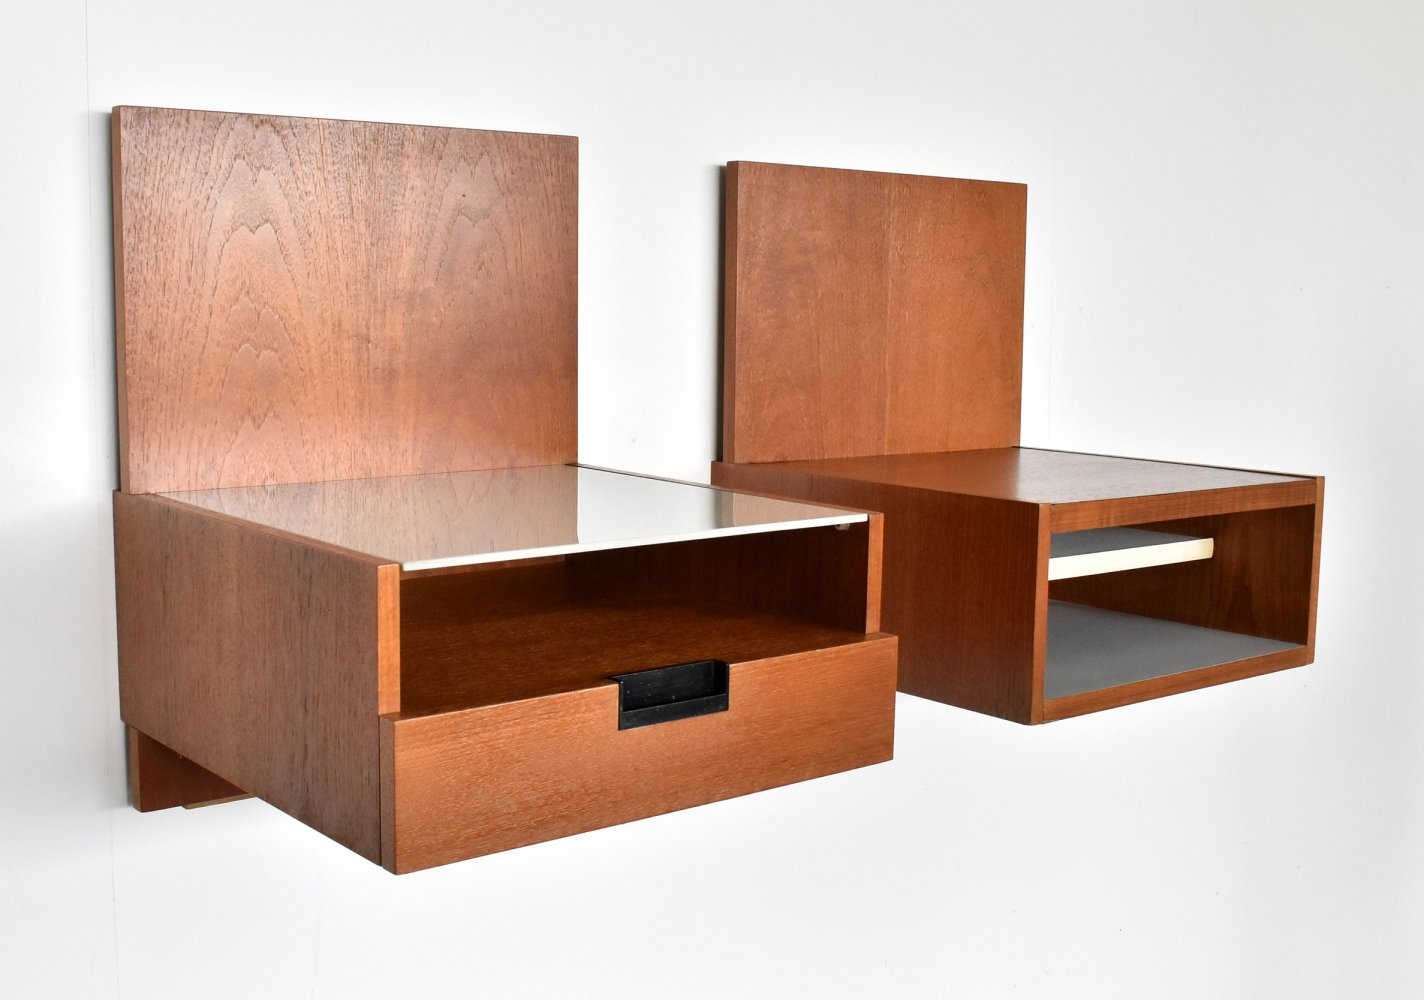 Japanese series bedside tables by Cees Braakman for Pastoe, 1960s